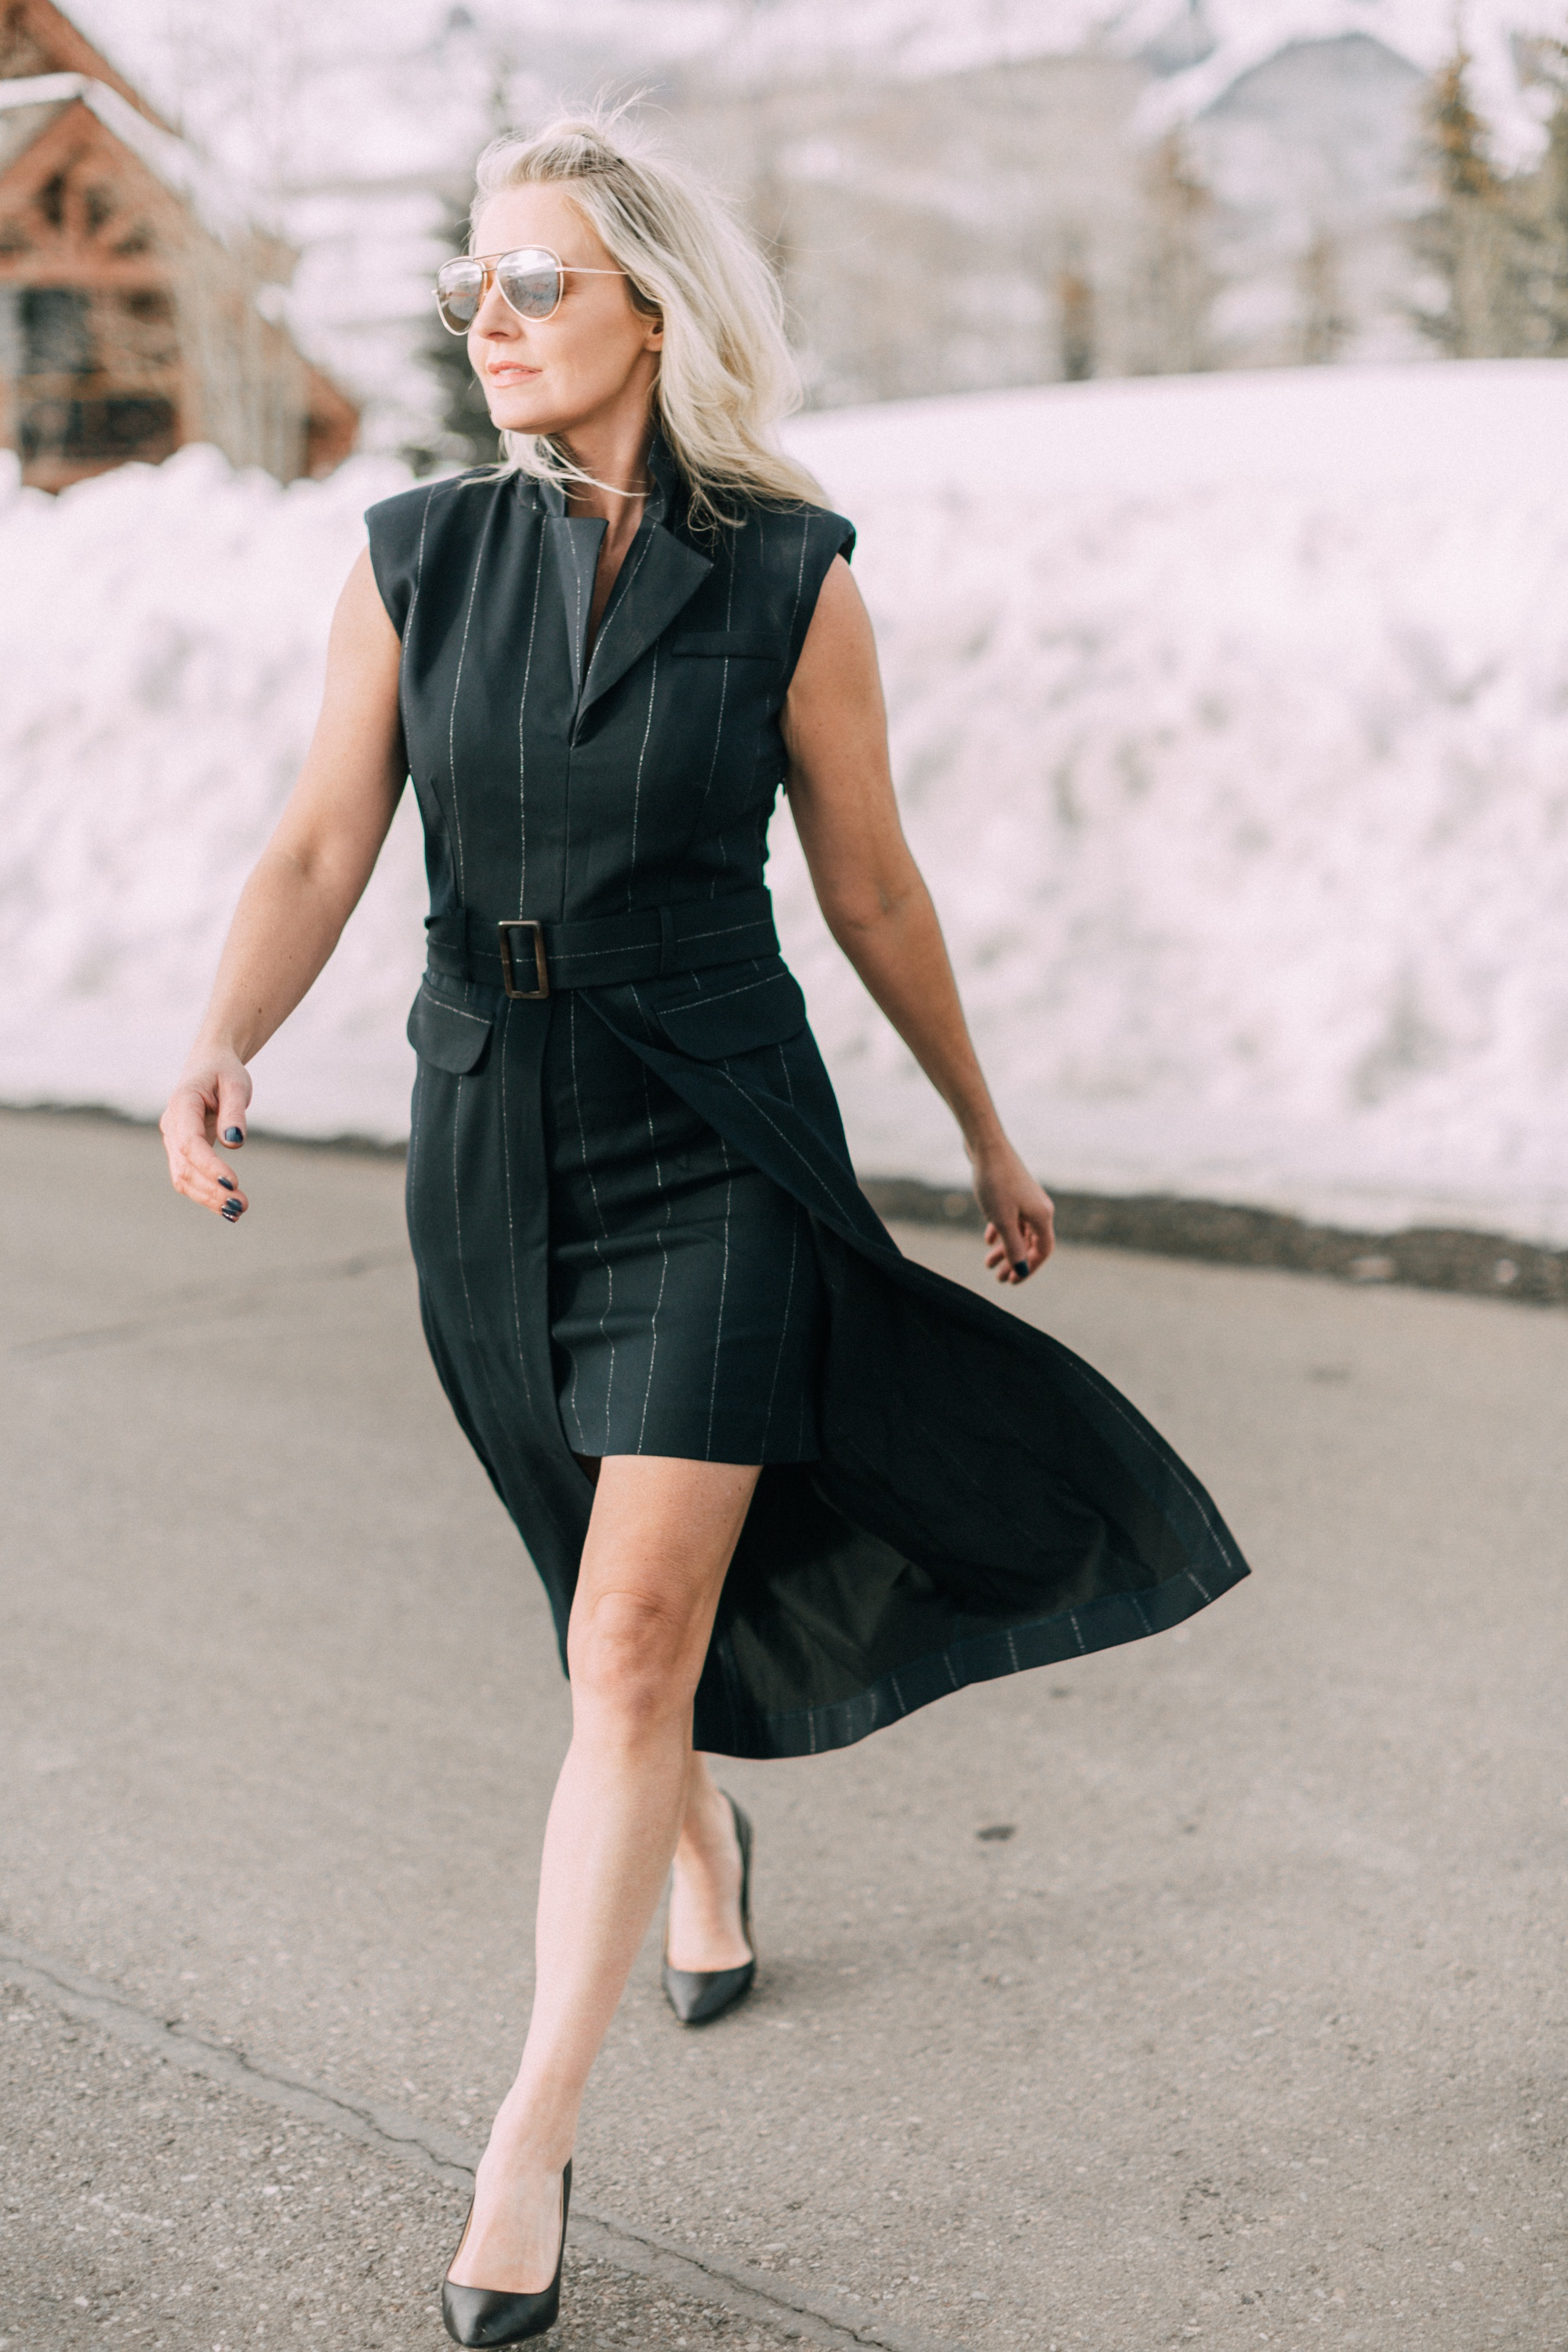 Spring Office Dress, fashion blogger Erin Busbee of BusbeeStyle.com wearing a navy pinstripe dress from Asos with black Jimmy Choo pumps in Telluride, Colorado, talking about dresses for the office